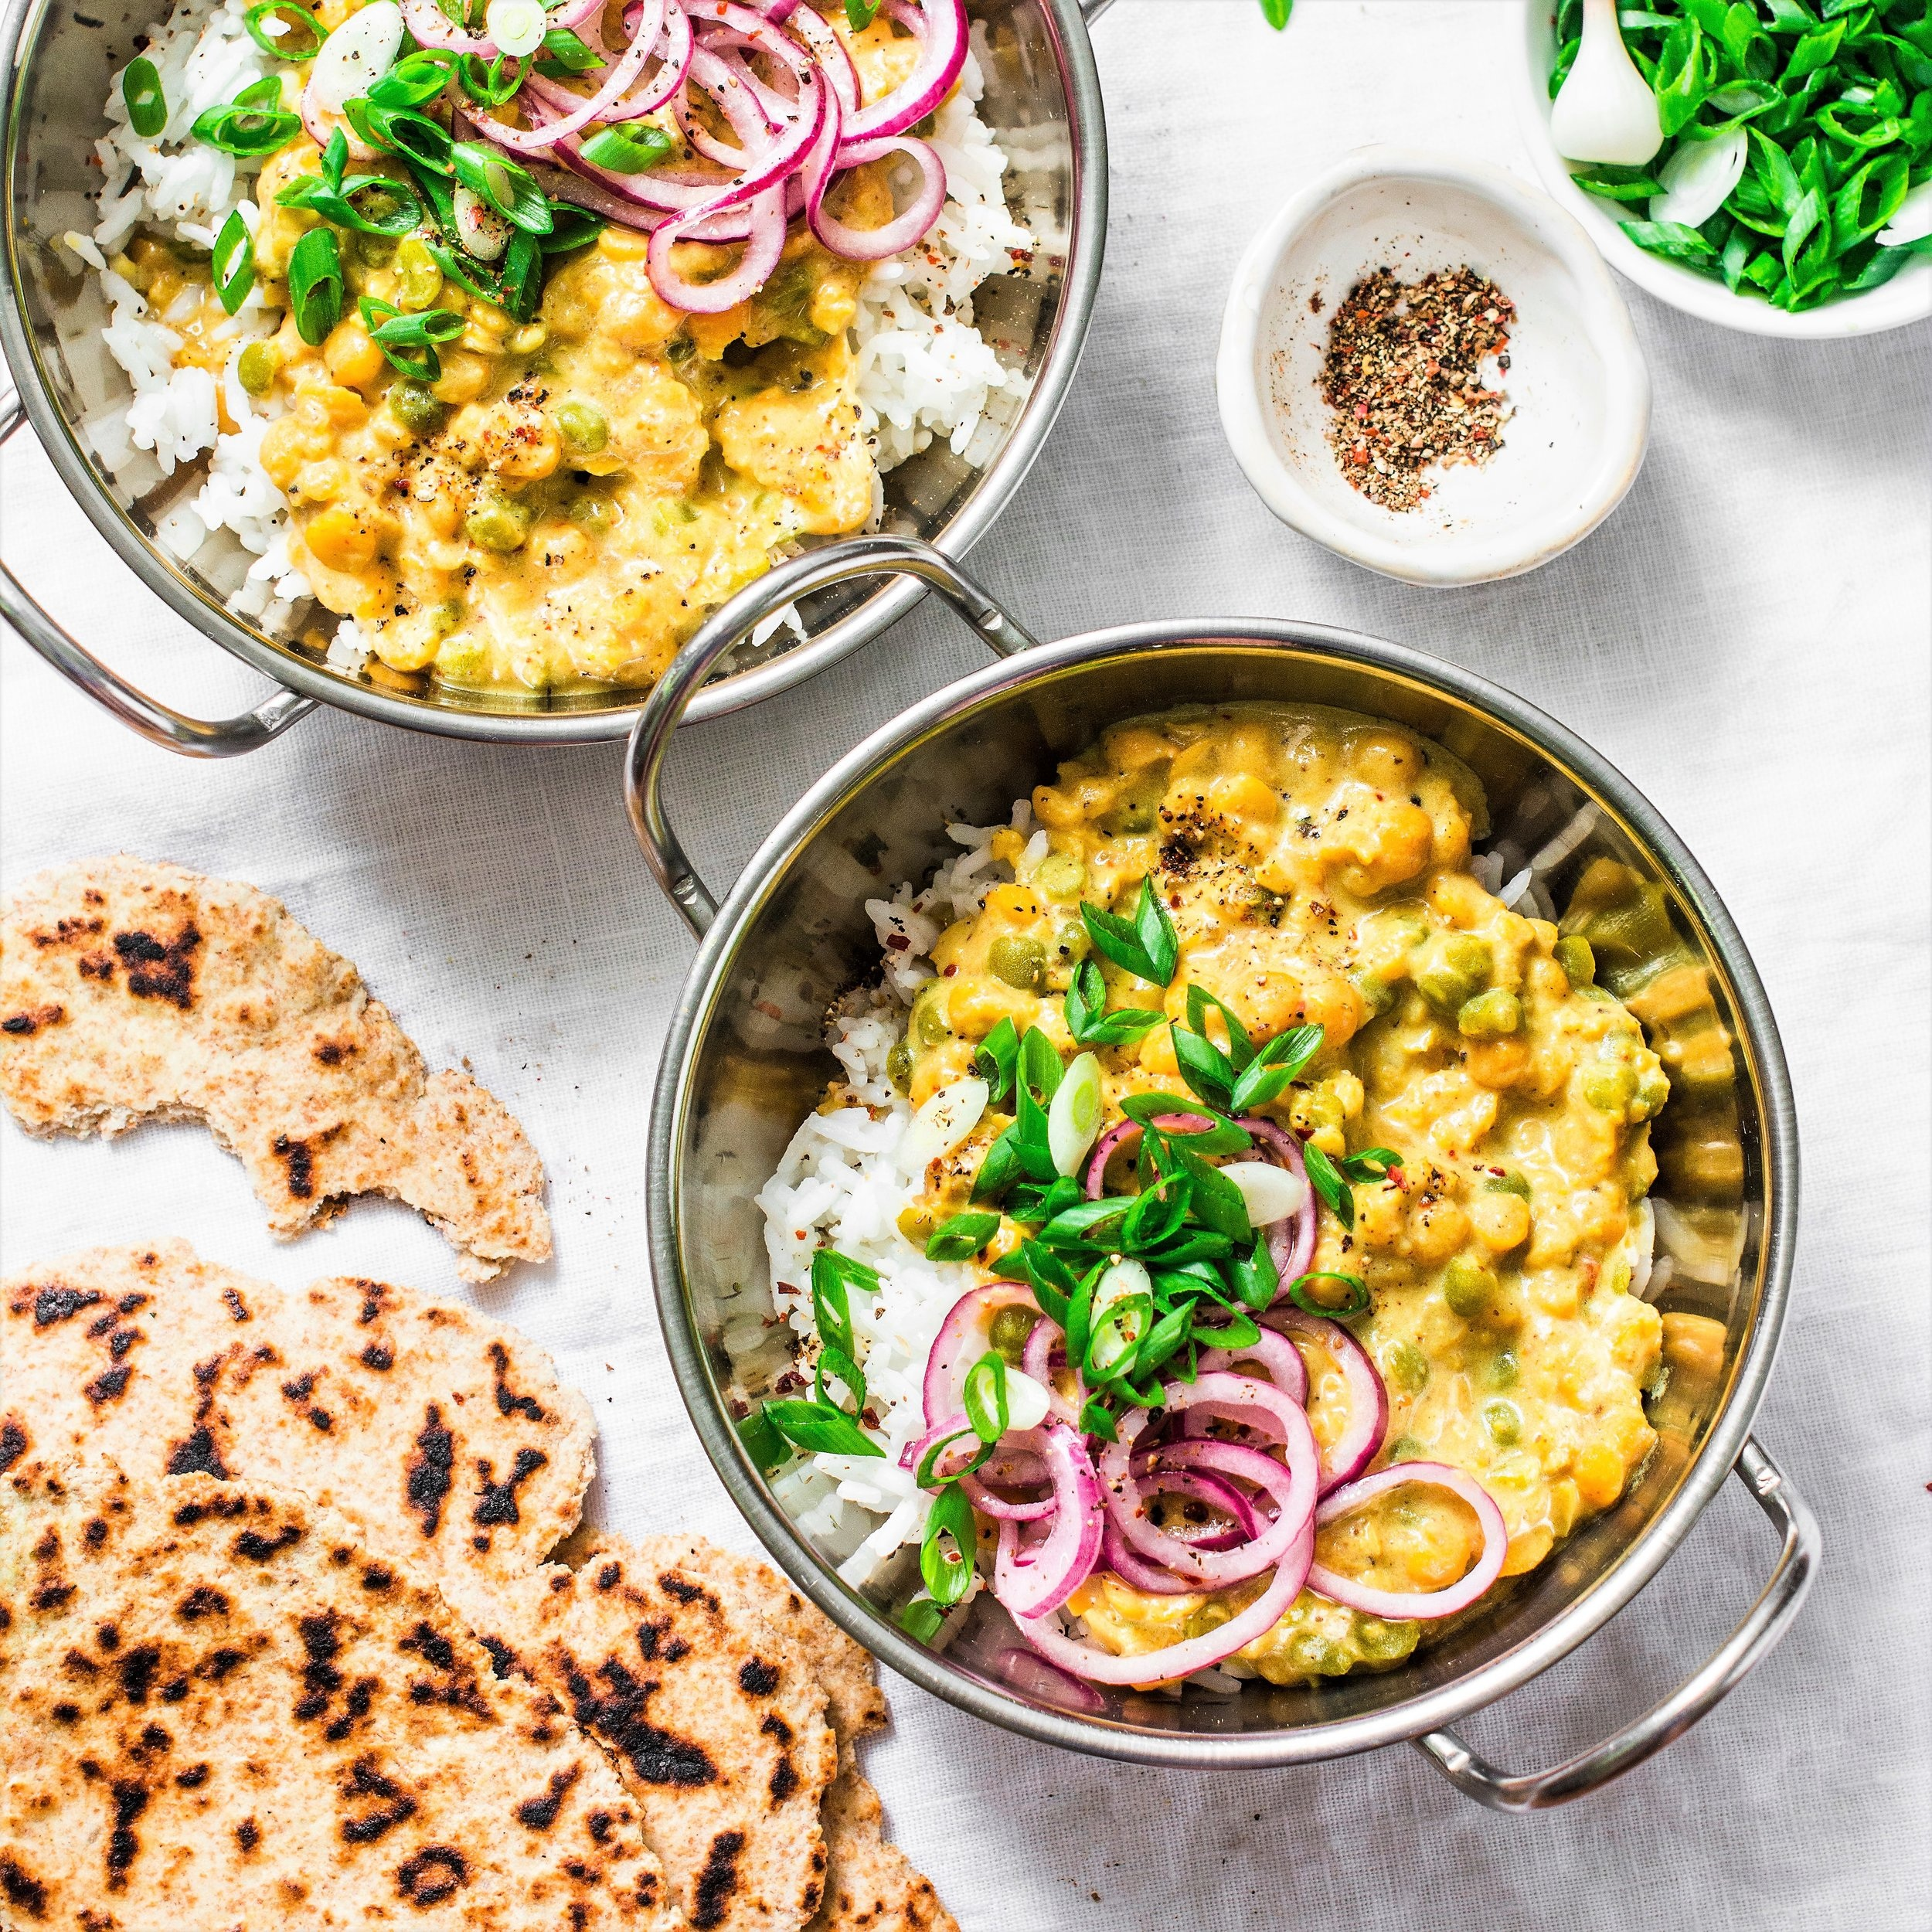 Indian+dhal+with+jasmine+rice%2C+marinated+red+onion%2C+scallion+and+whole+grain+flatbread+on+light+background%2C+top+view.+Flat+lay%2C+vegetarian+f.jpg